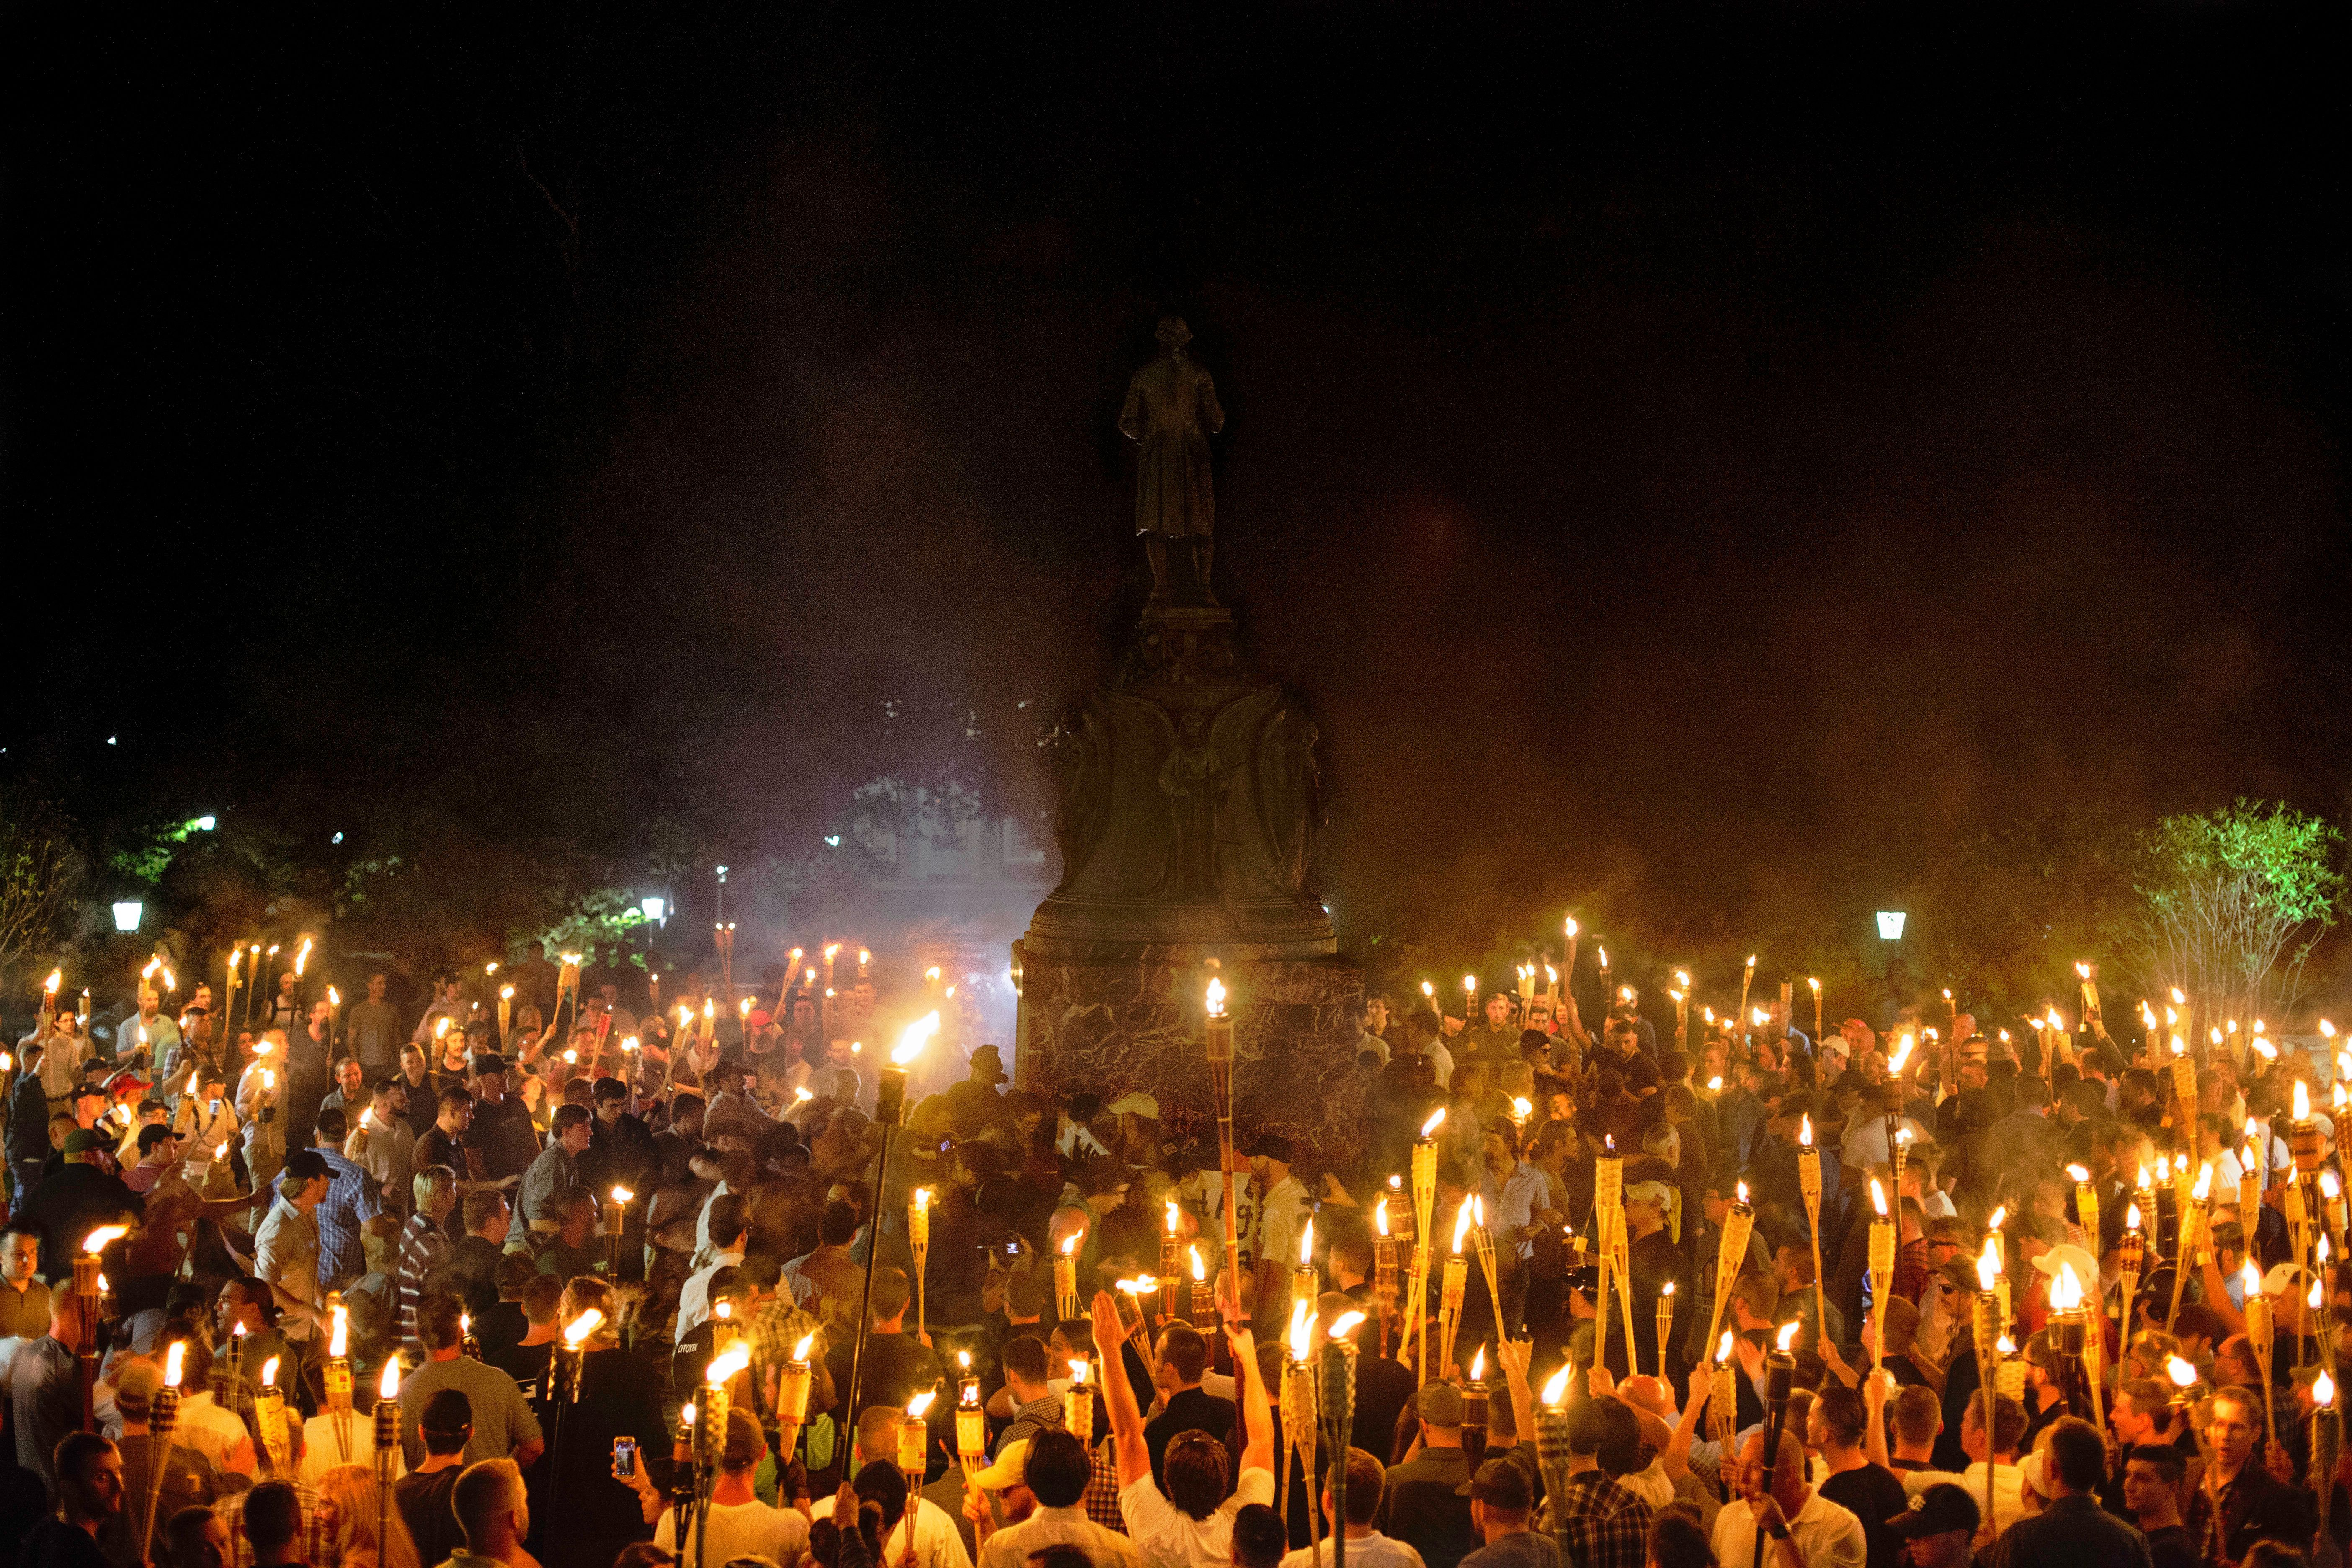 Neo Nazis, Alt-Right, and White Supremacists encircle counter protestors at the base of a statue of Thomas Jefferson after marching through the University of Virginia campus with torches in Charlottesville, Va., USA on August 11, 2017 (Photo by Shay Horse/NurPhoto via Getty Images)